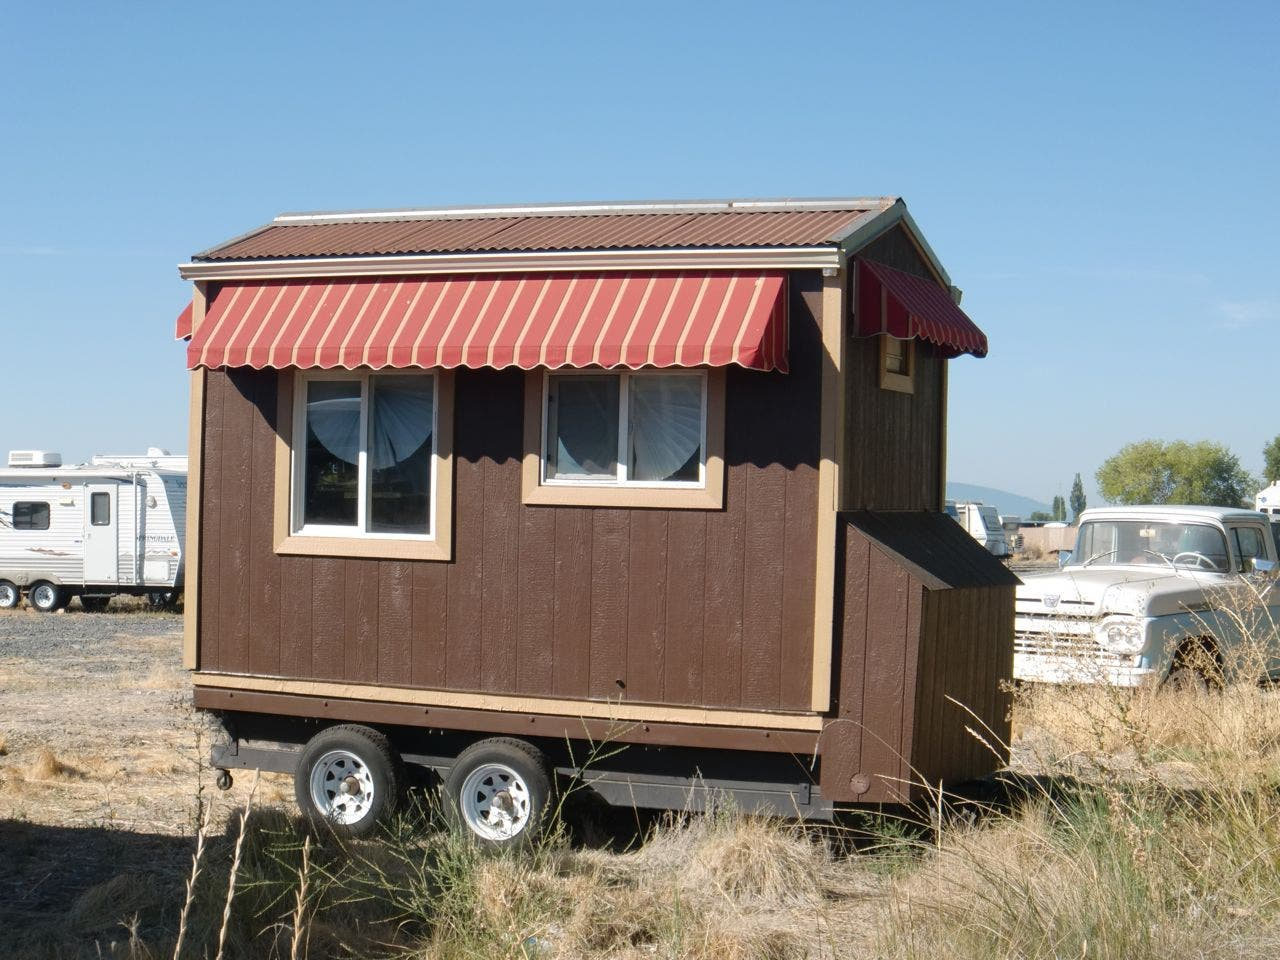 mobile homes for sale in klamath falls oregon with Concession Trailers As Tiny Houses on Cheap Homes For Sale On The Oregon Coast moreover Merrill malin also Mt Scott 2 4 3092257 also East Oregon Real Estate Craigslist together with Cheap Homes For Sale Northern California.